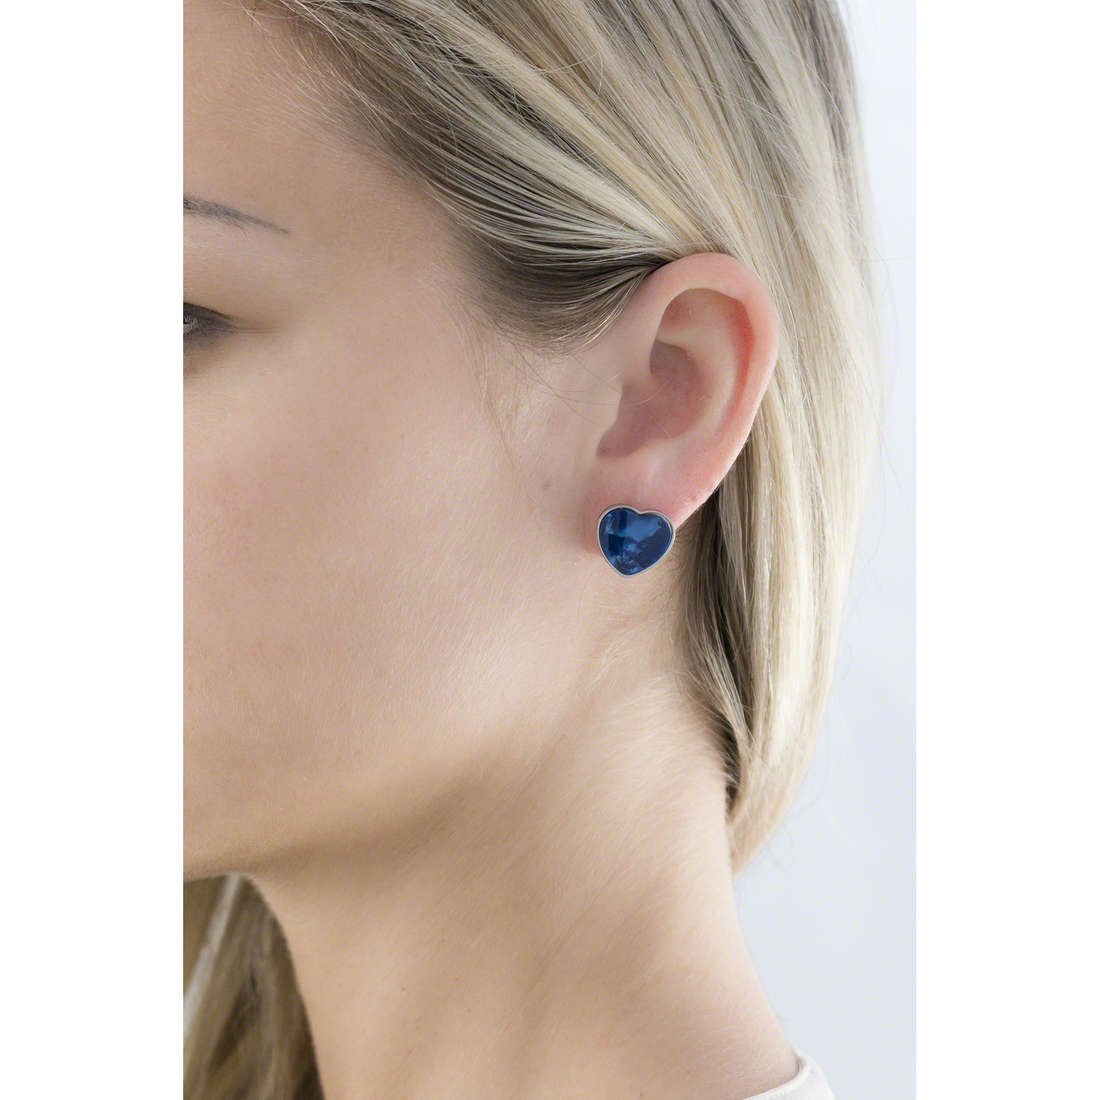 Ops Objects boucles d'oreille Marble femme OPSOR-361 indosso